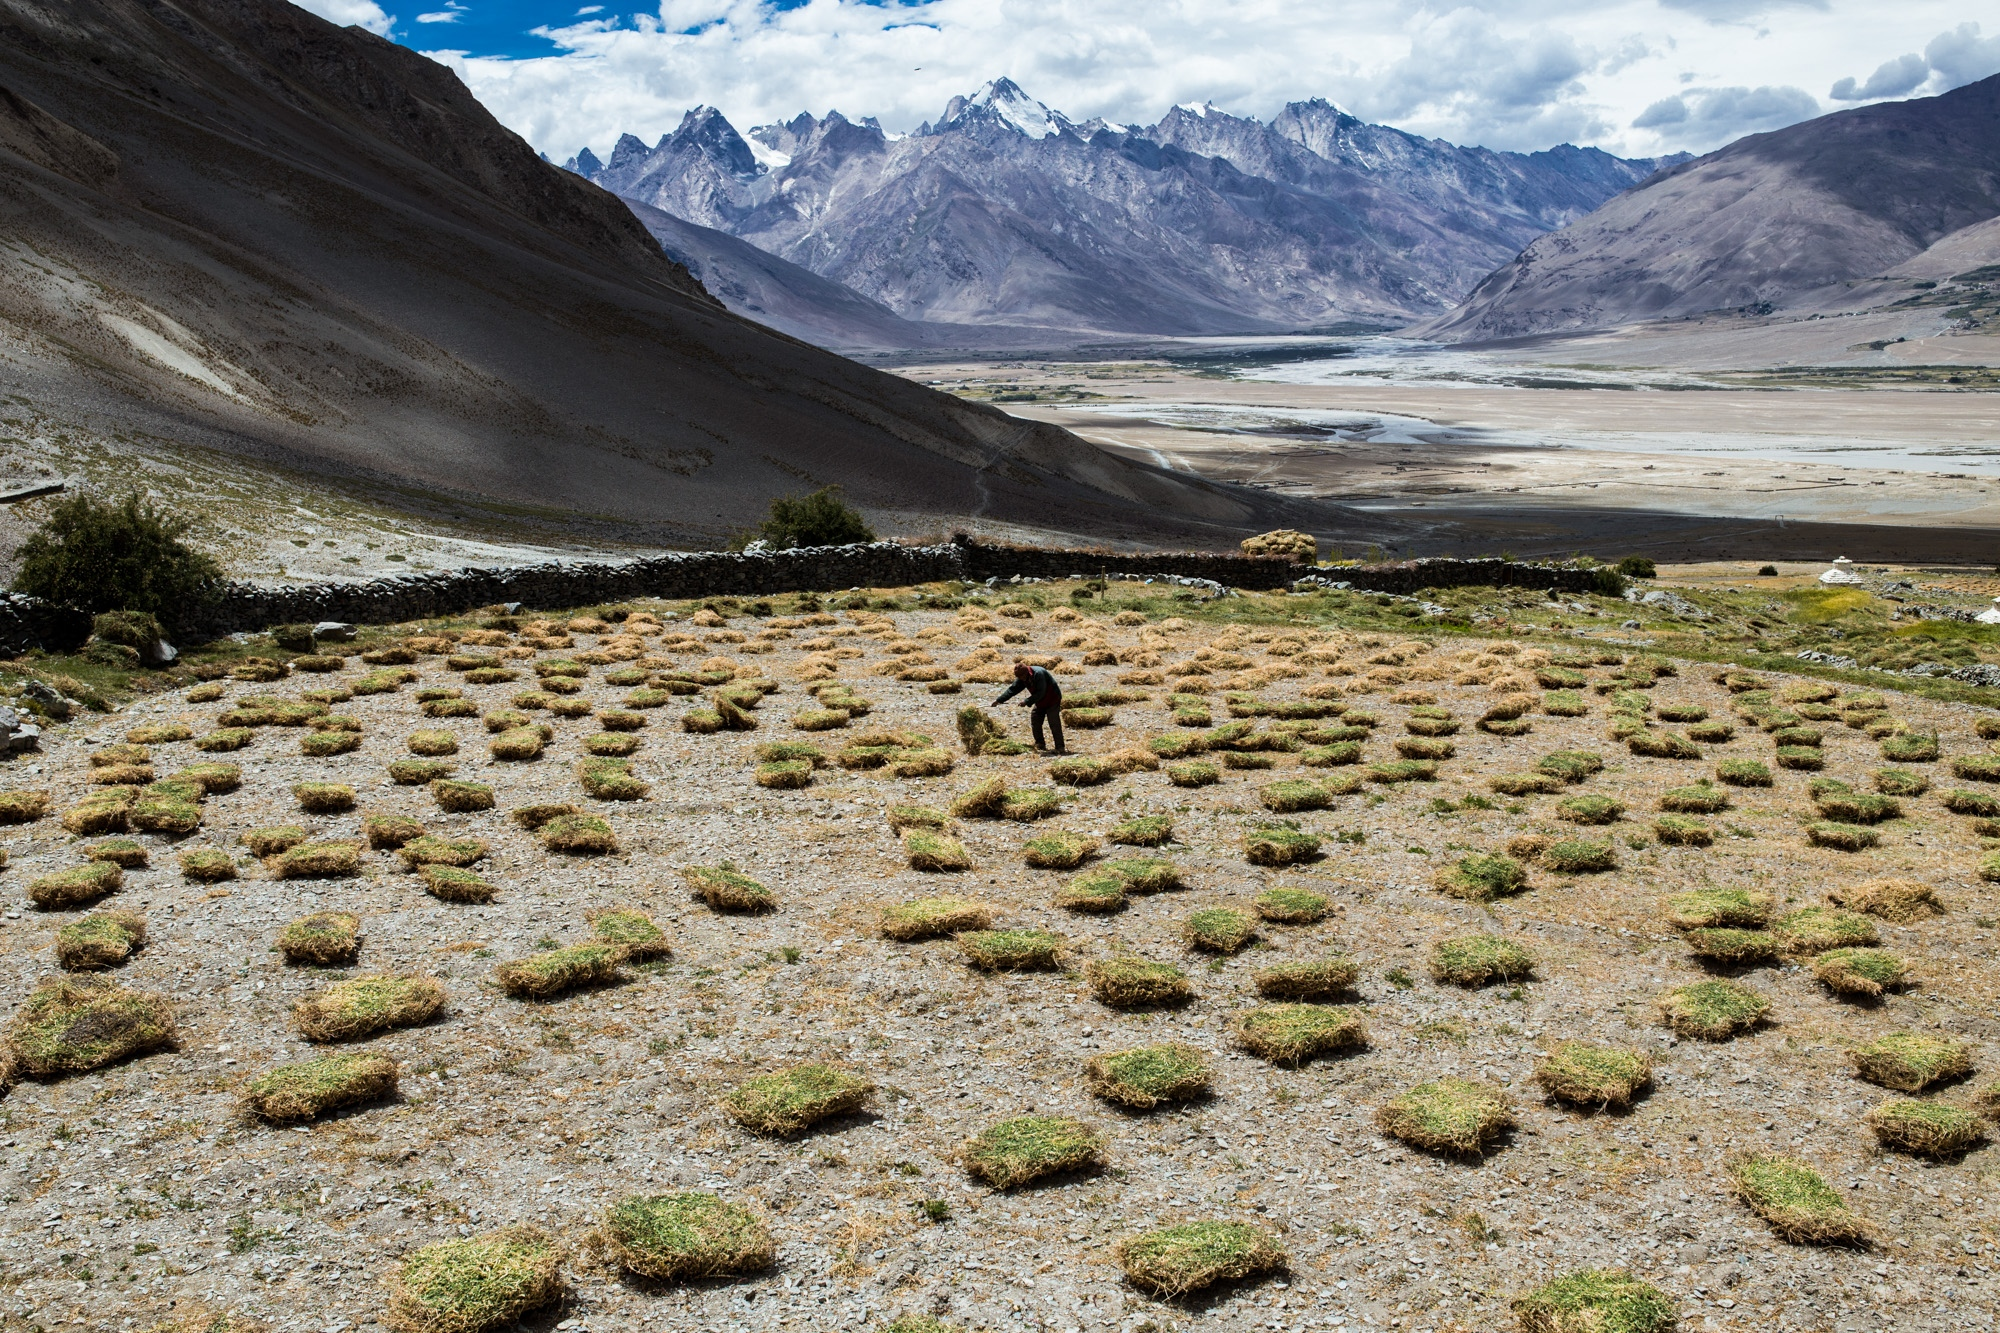 A man tends to patches of sun-drying fodder, used as animal feed during the winter months in the Zanskar Himalaya. A lack of water due to glacial retreats and declining snowfall has drastically reduced the amount that can be produced.